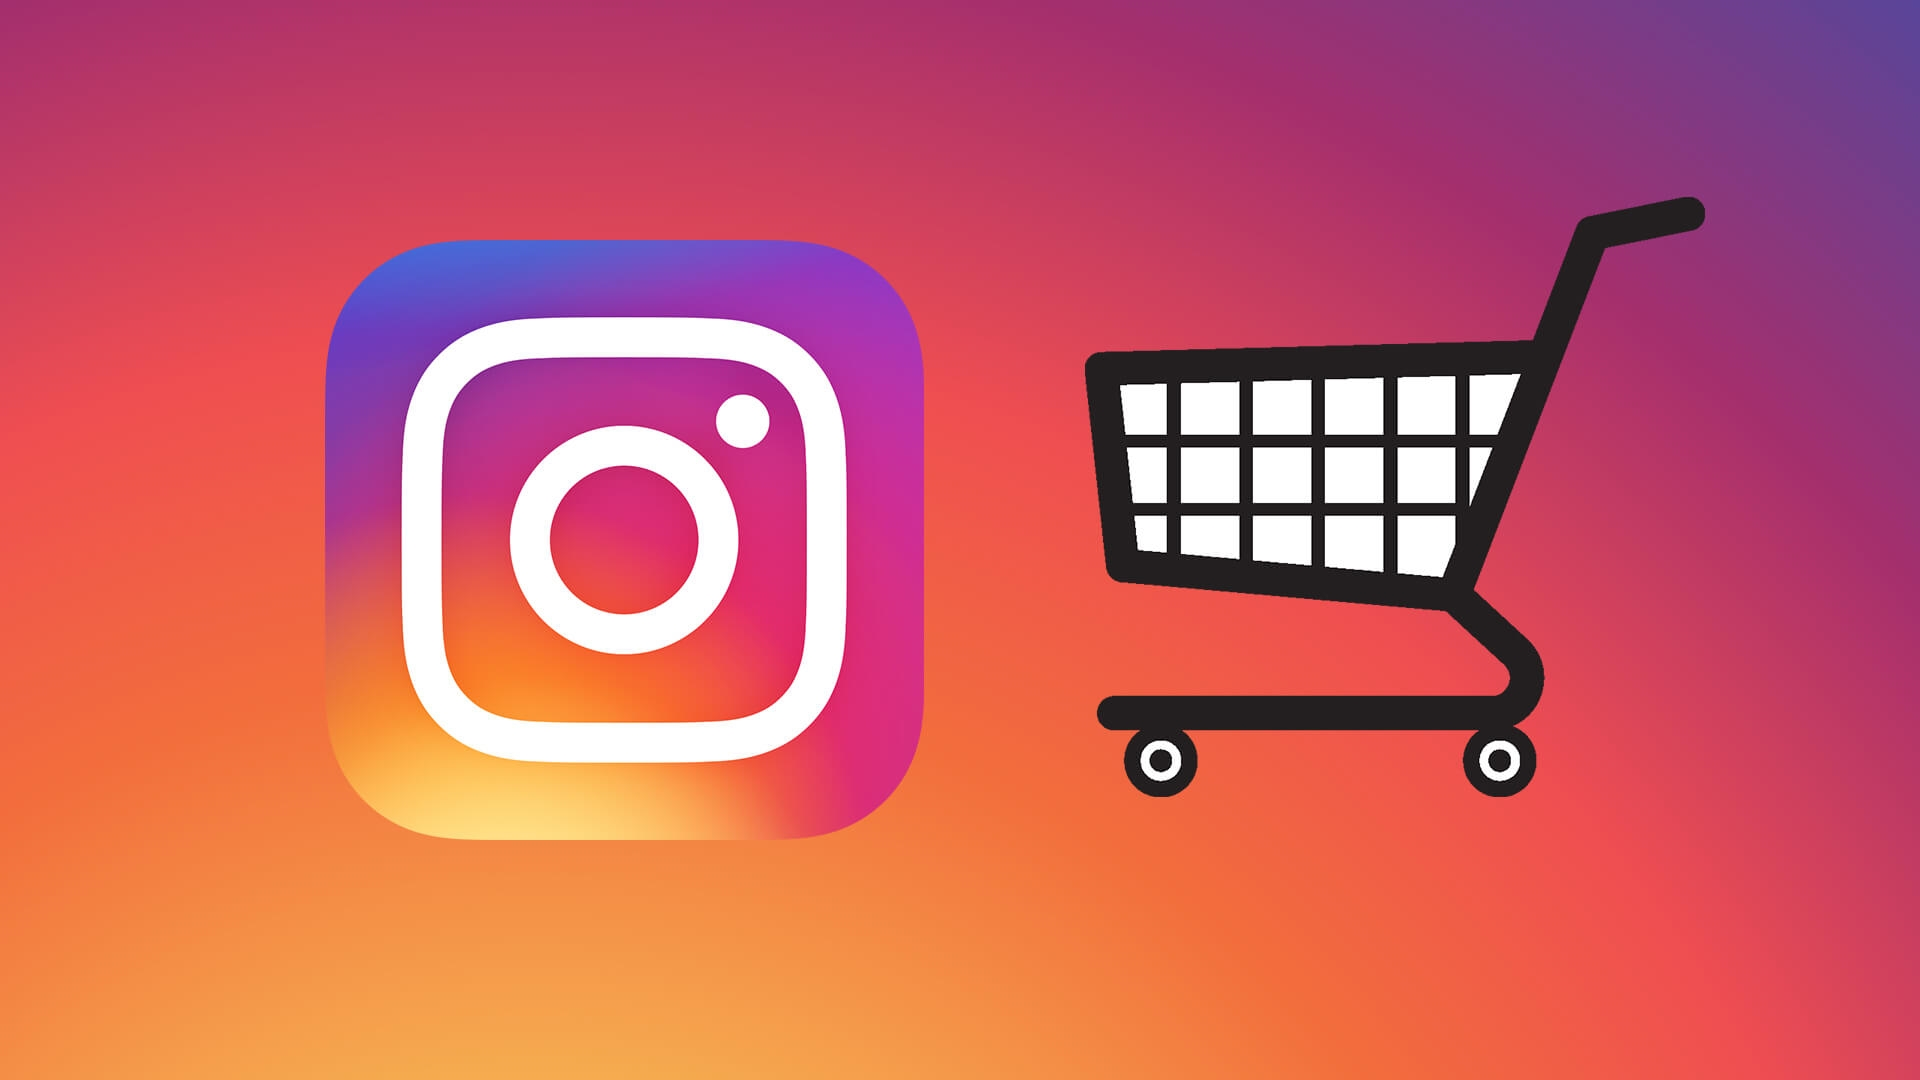 Instagram launches @shop account to boost interest in shoppable posts | DeviceDaily.com